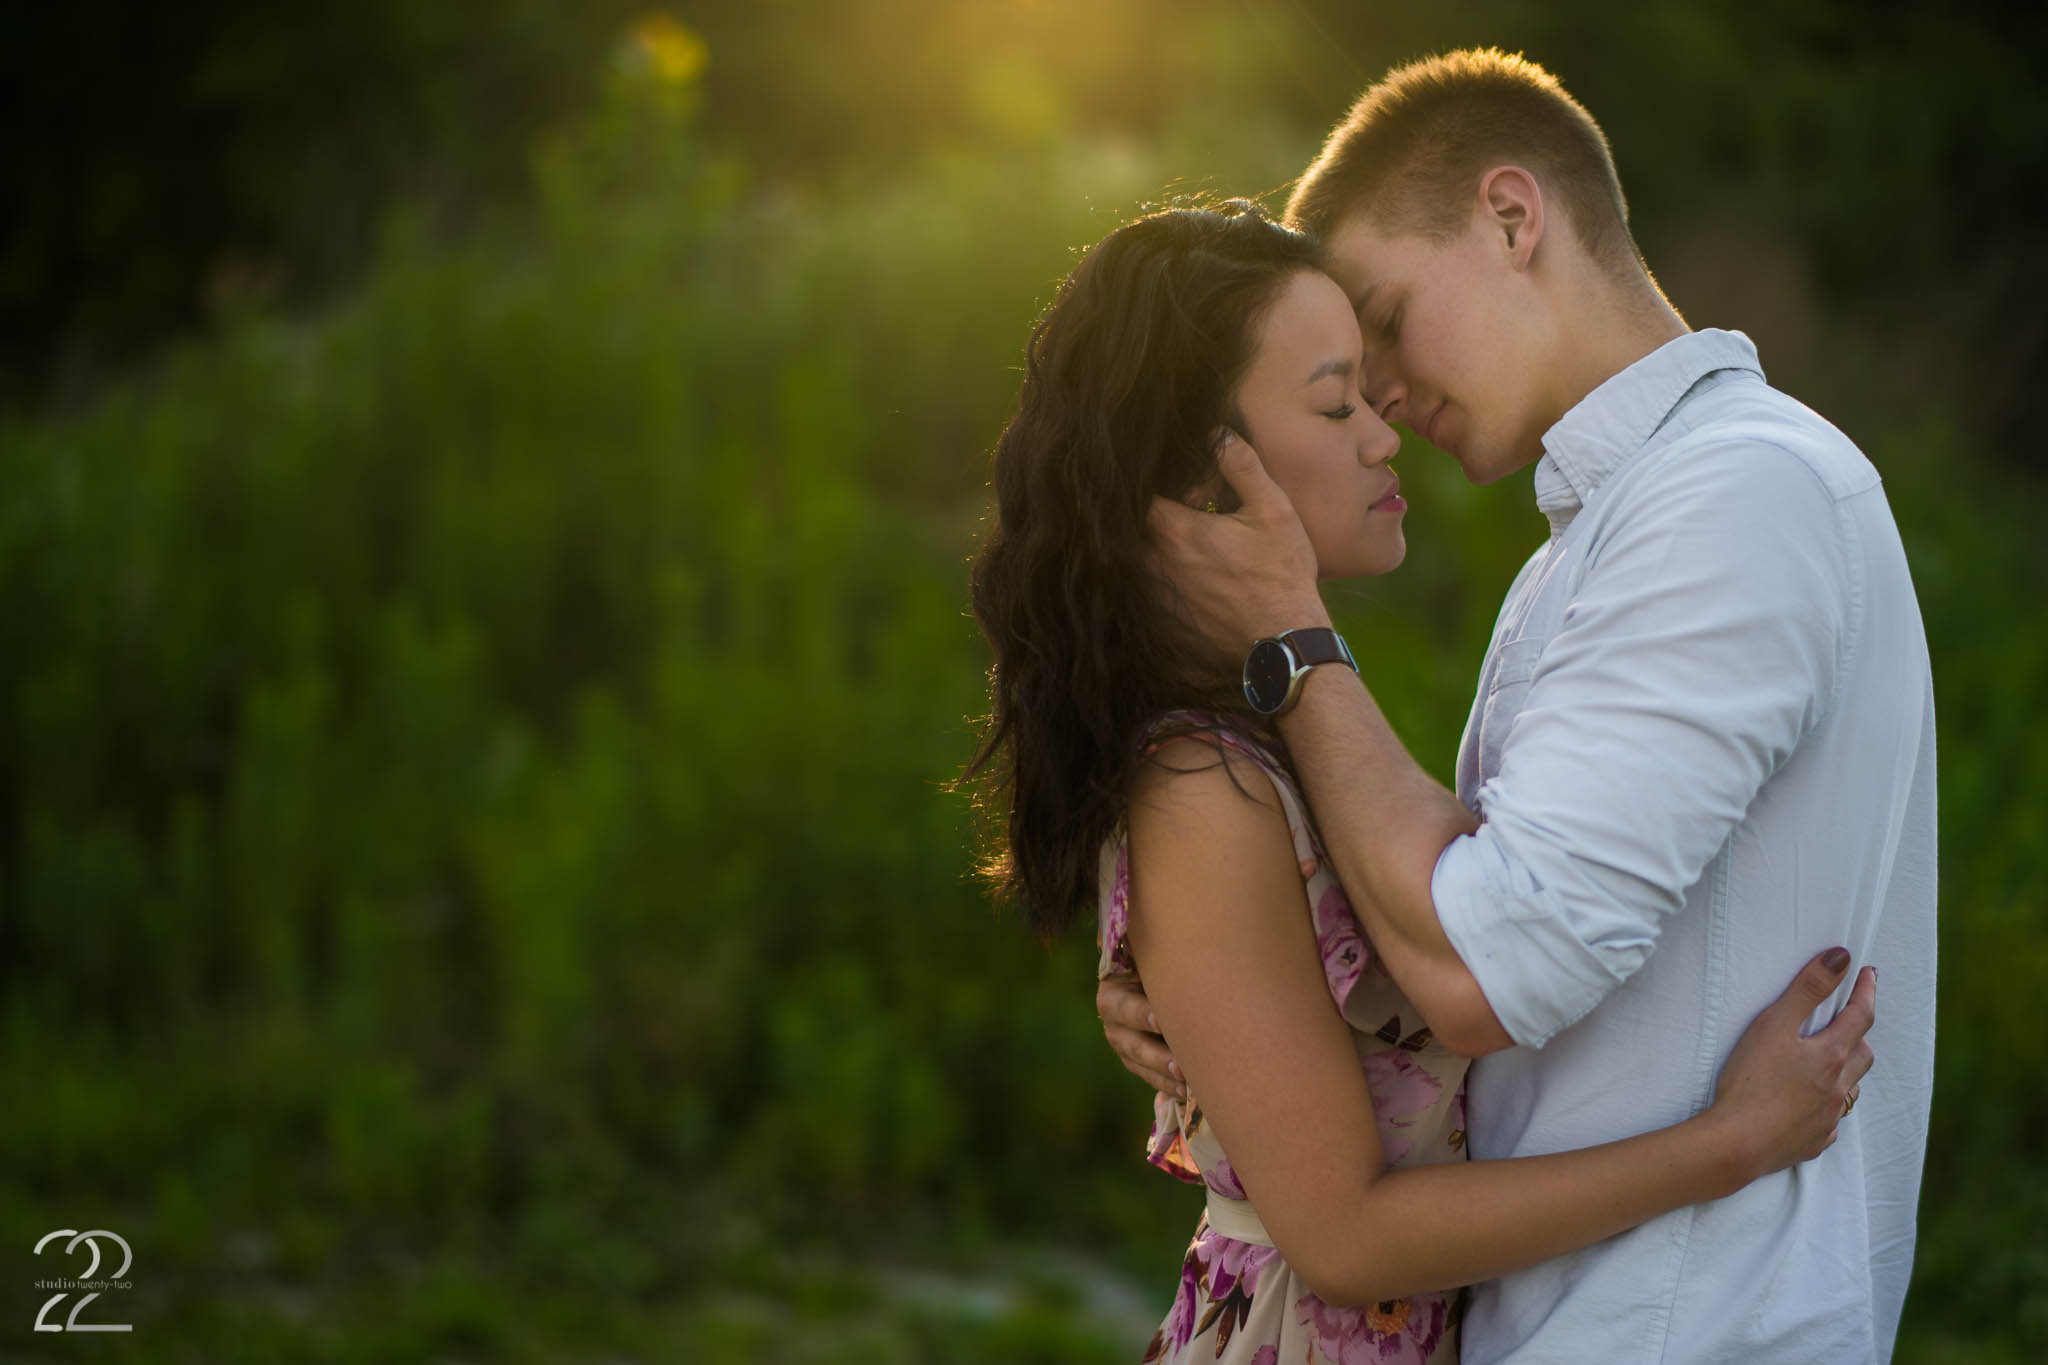 Man brings woman in for a kiss as the sun sets at Oakes Quarry Park by Dayton Wedding Photographer Studio 22 Photography